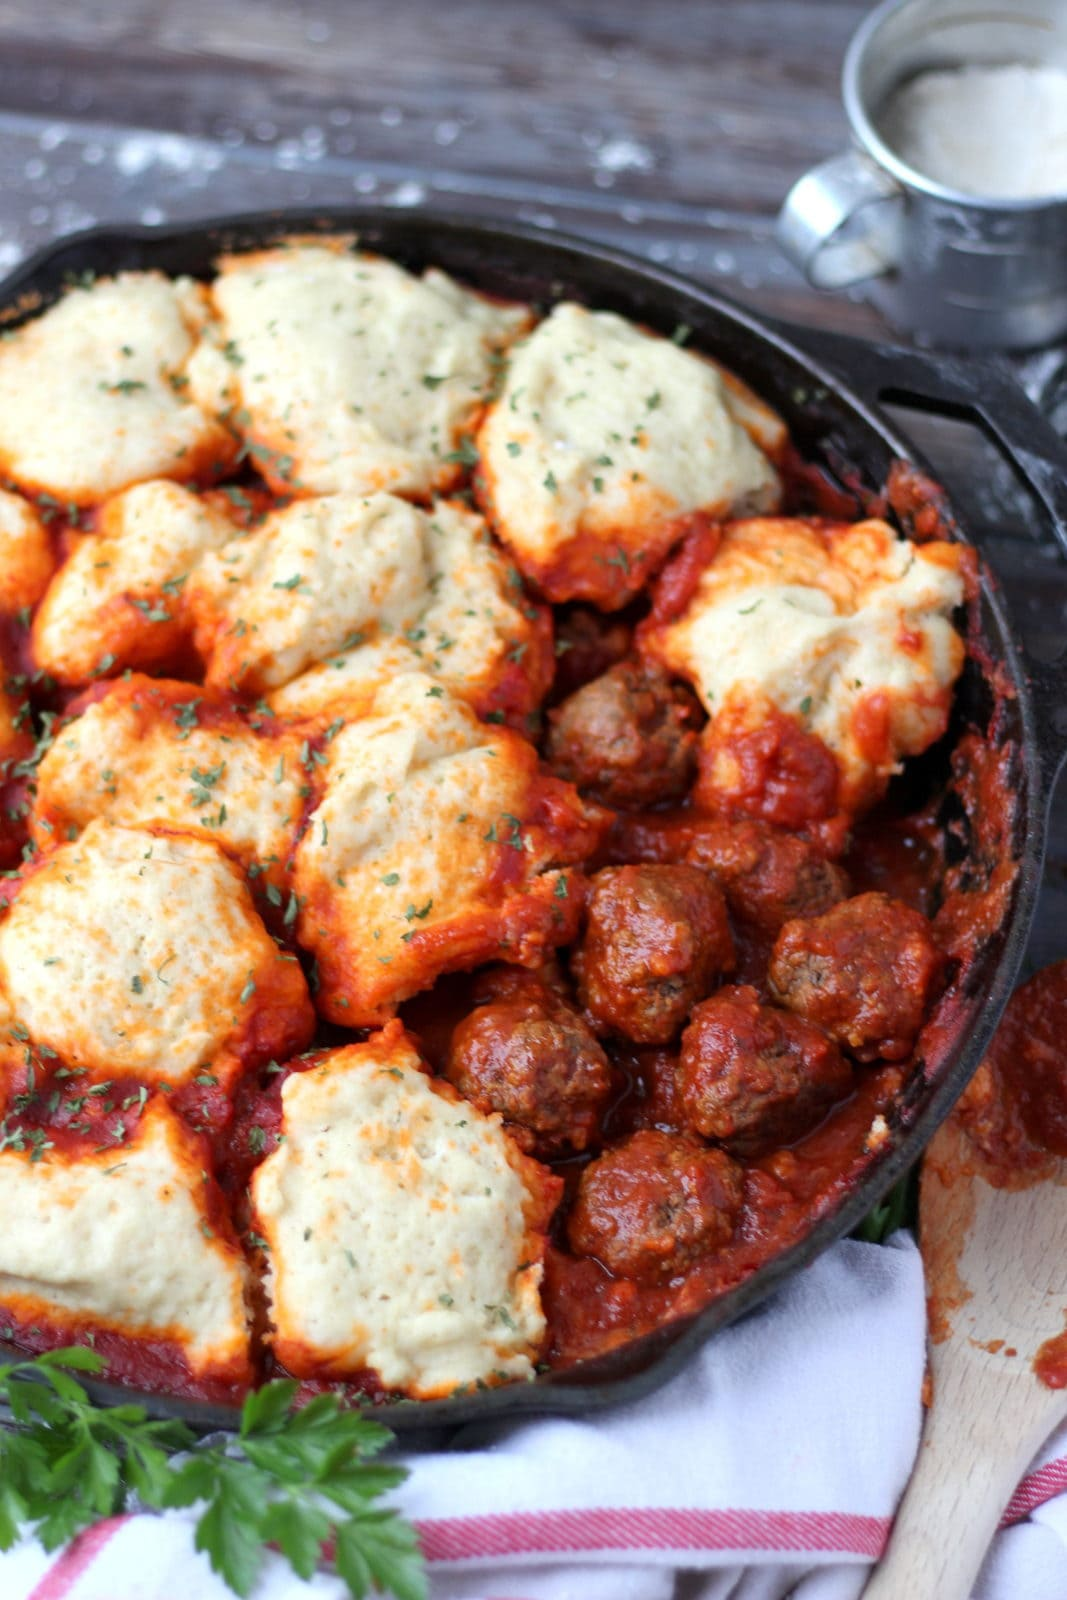 Meatballs and Dumplings - recipe for pillow soft dumplings served with meatballs simmered in tomato sauce. Perfect recipe for a weeknight meal! thewoodenskillet.com #foodphotography #foodstyling